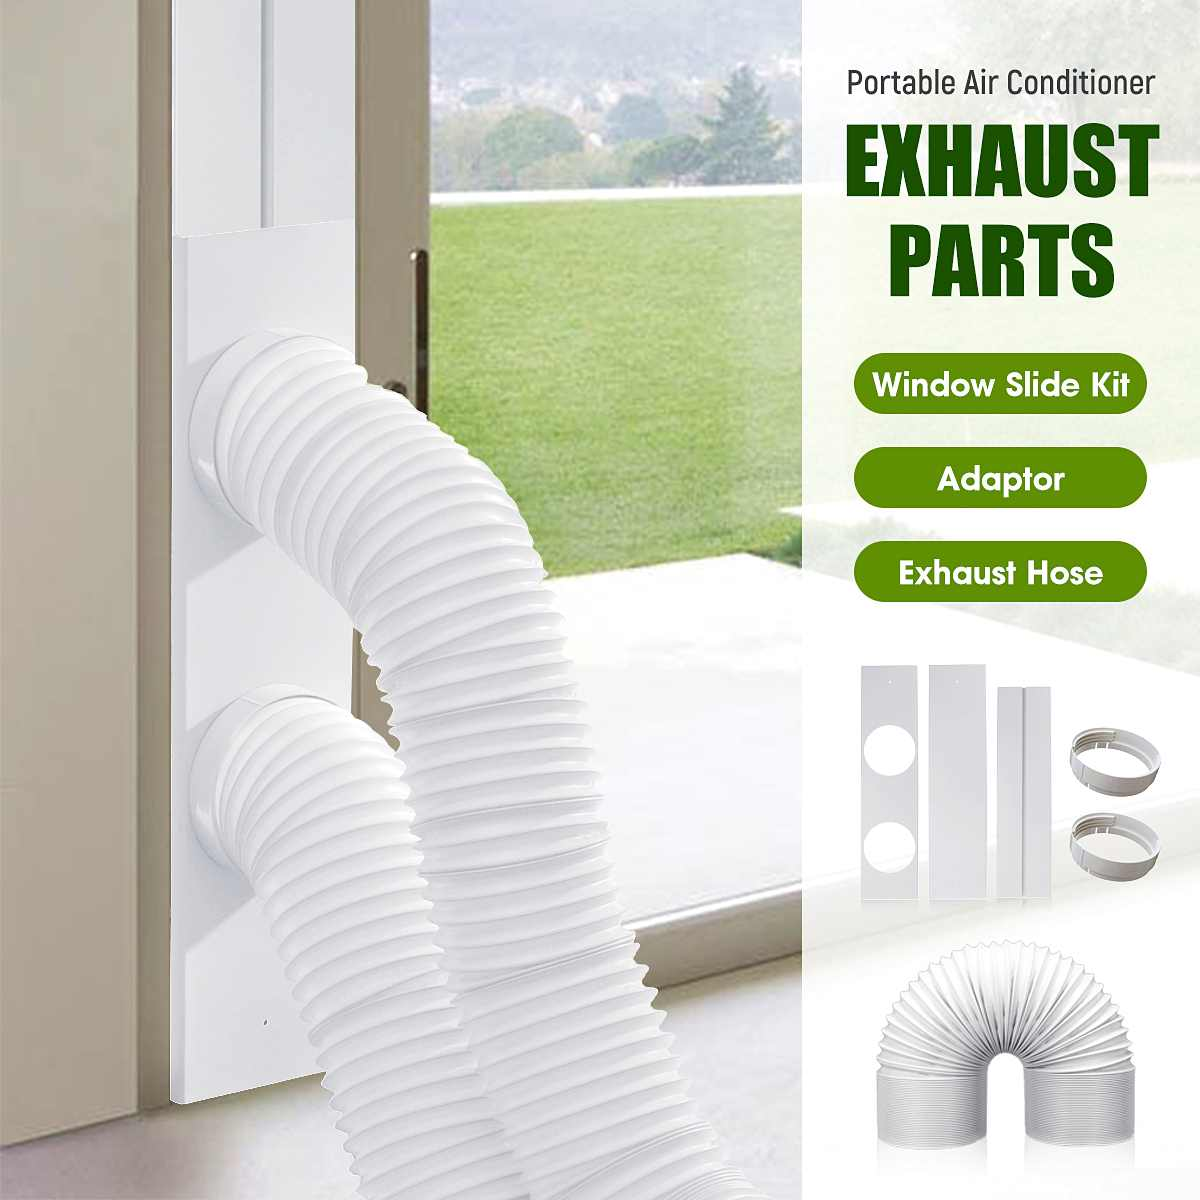 diy exhaust hose 2 3pcs window slide kit plate adaptor pvc pipe portable air conditioner accessories home mounting accessories